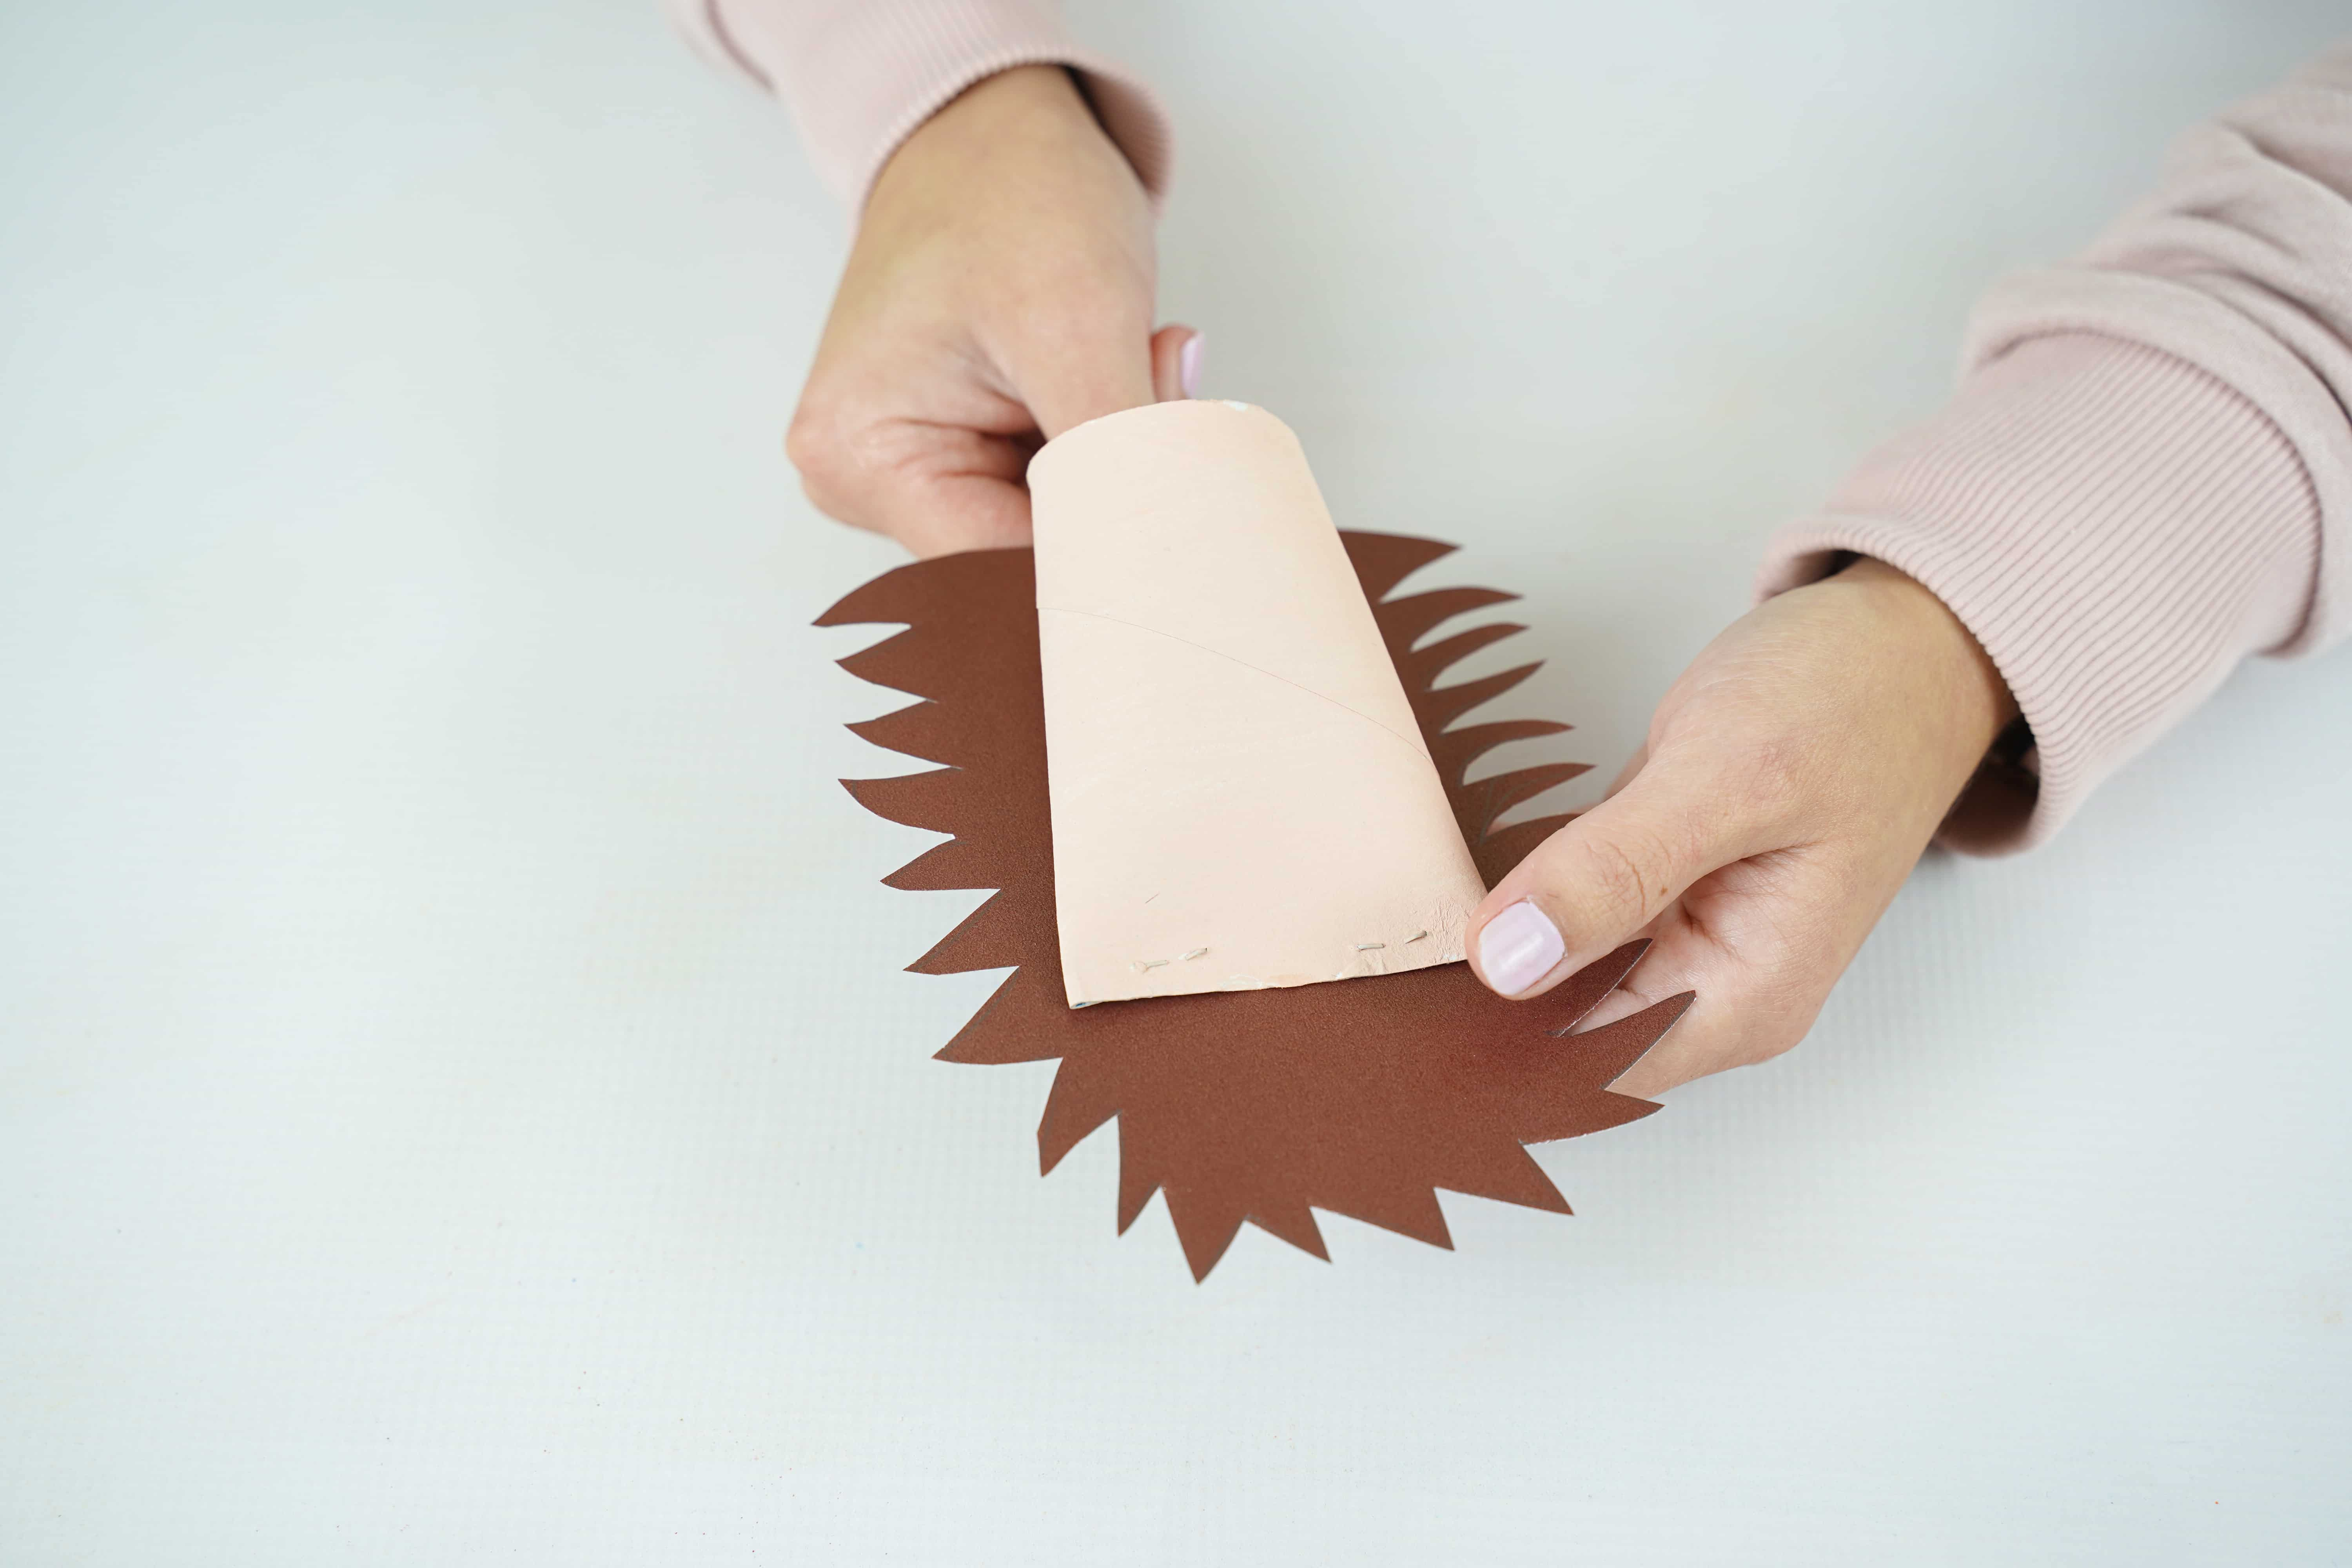 Hands gluing brown paper onto the light brown paper roll